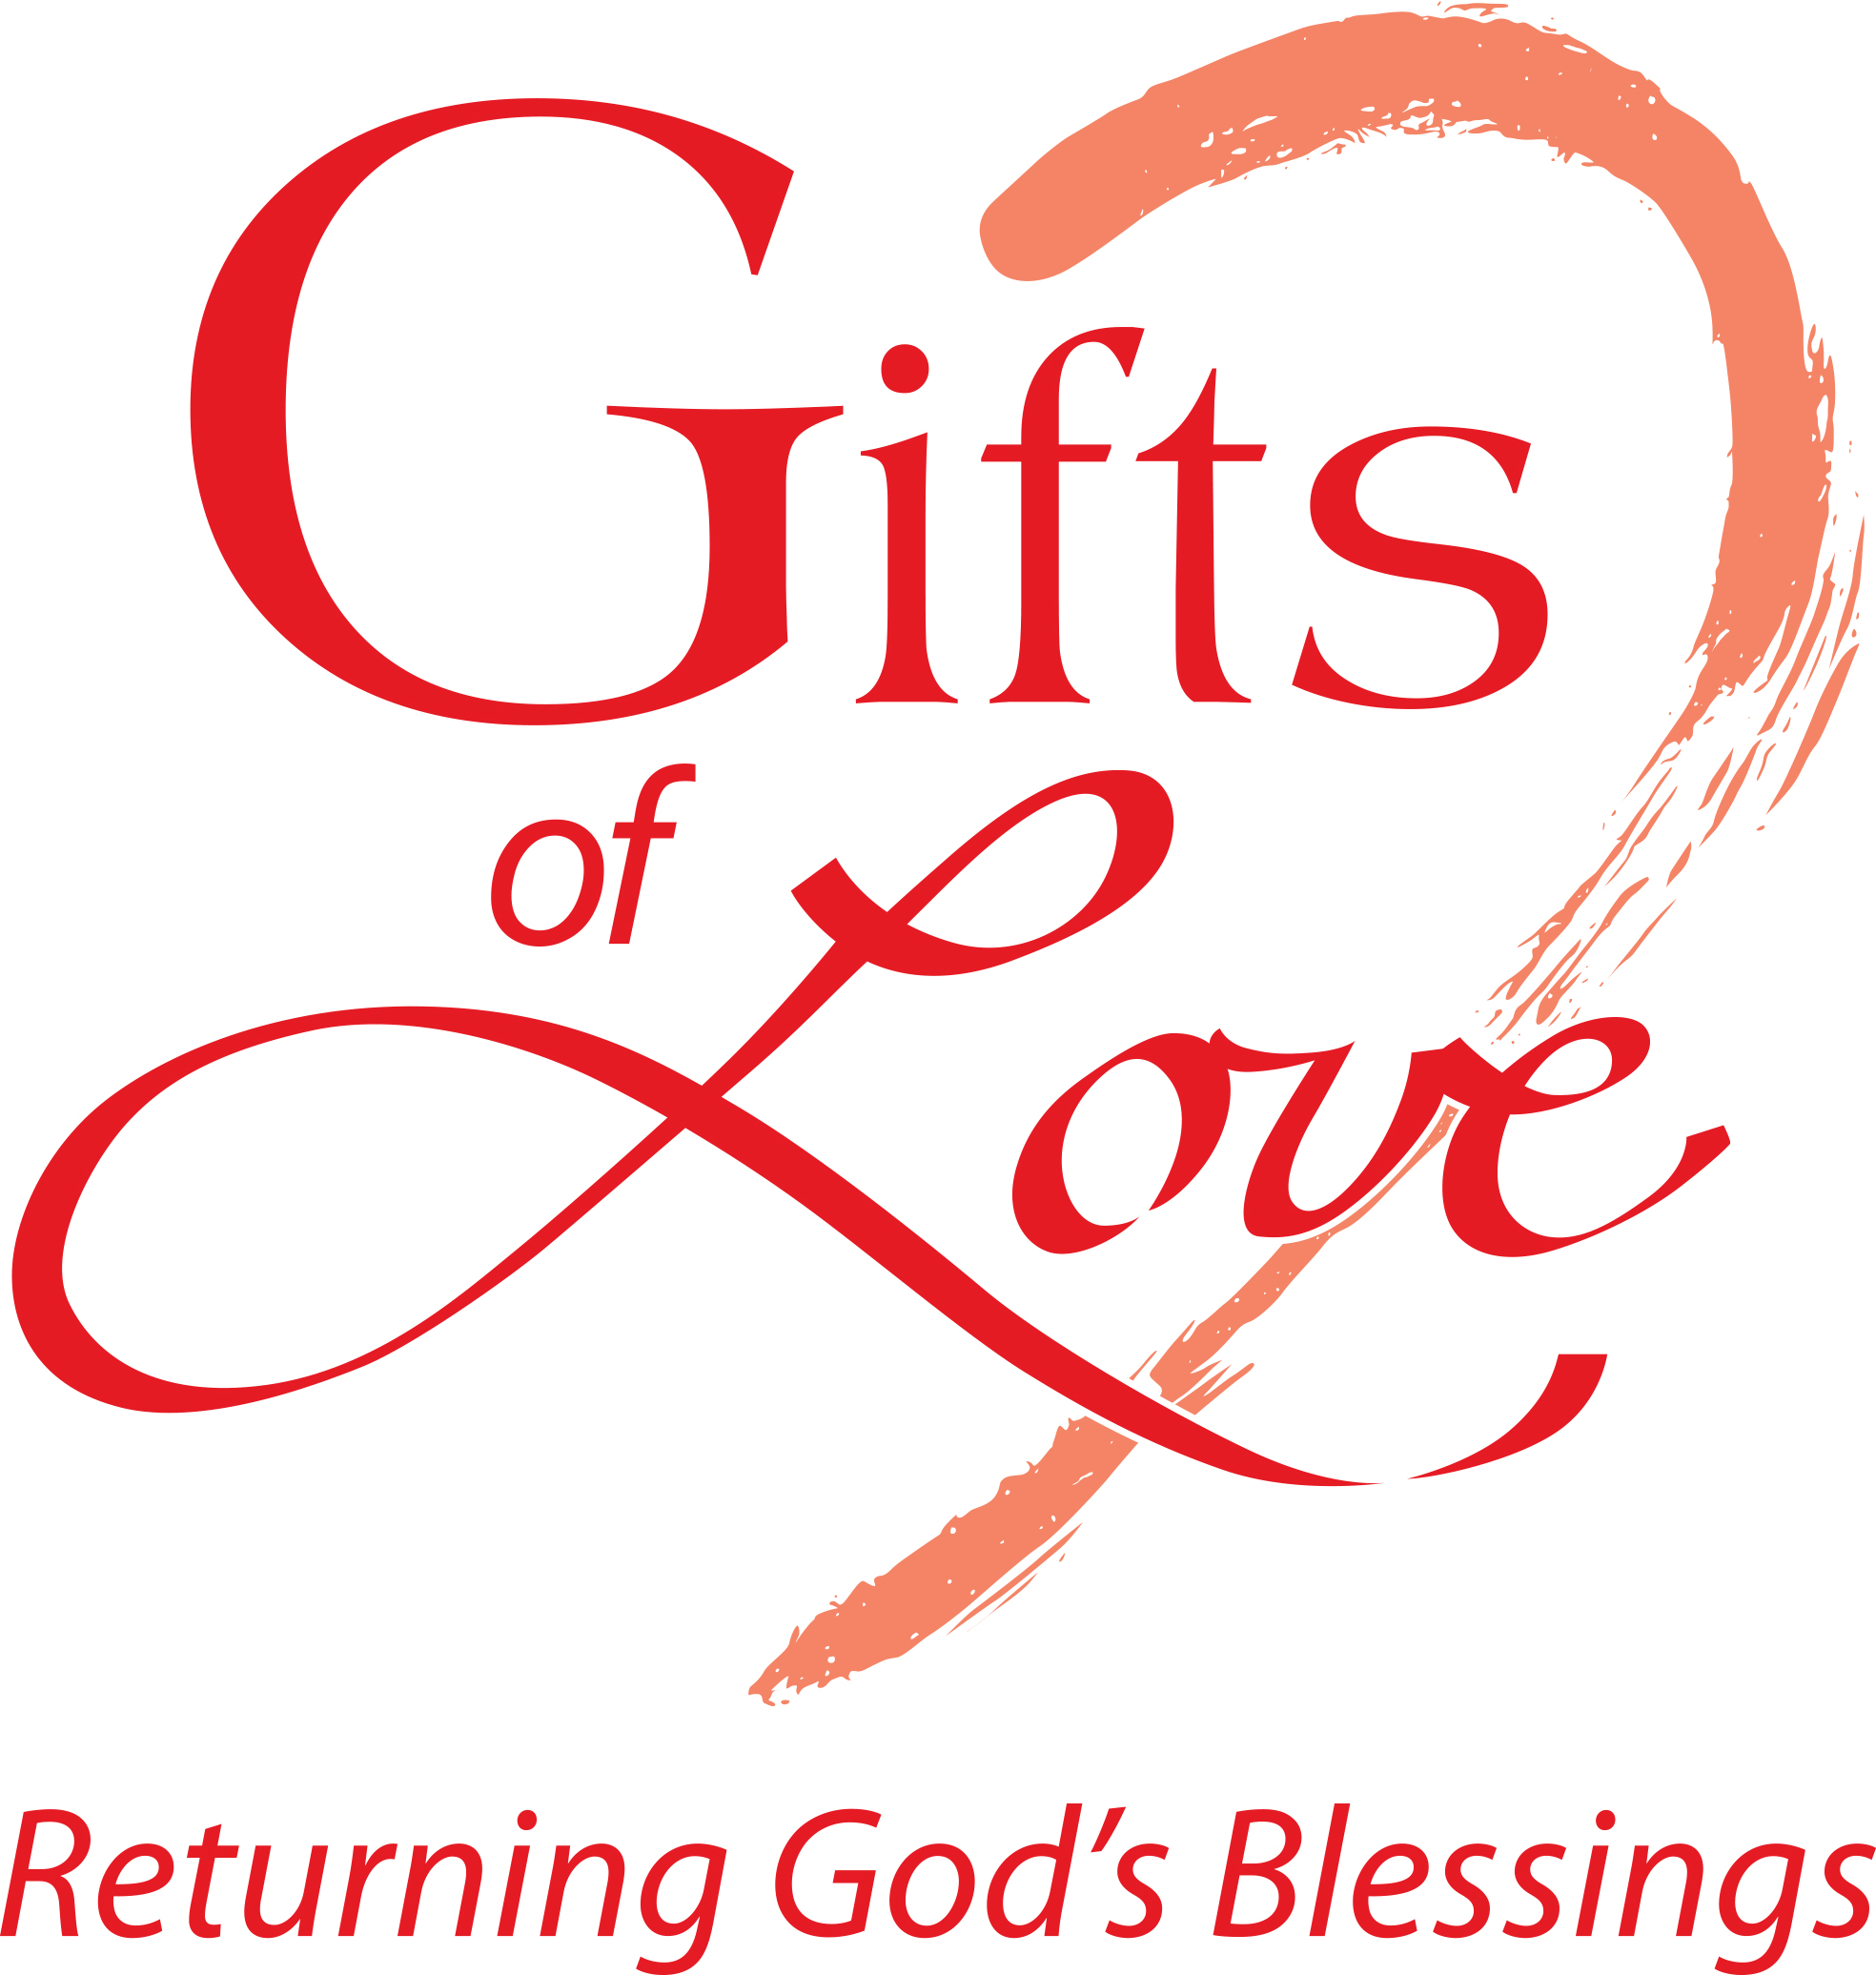 the gift of love The gift of love sheet music - choir vocal solo sheet music by hal h hopson: hope publishing company shop the world's largest sheet.